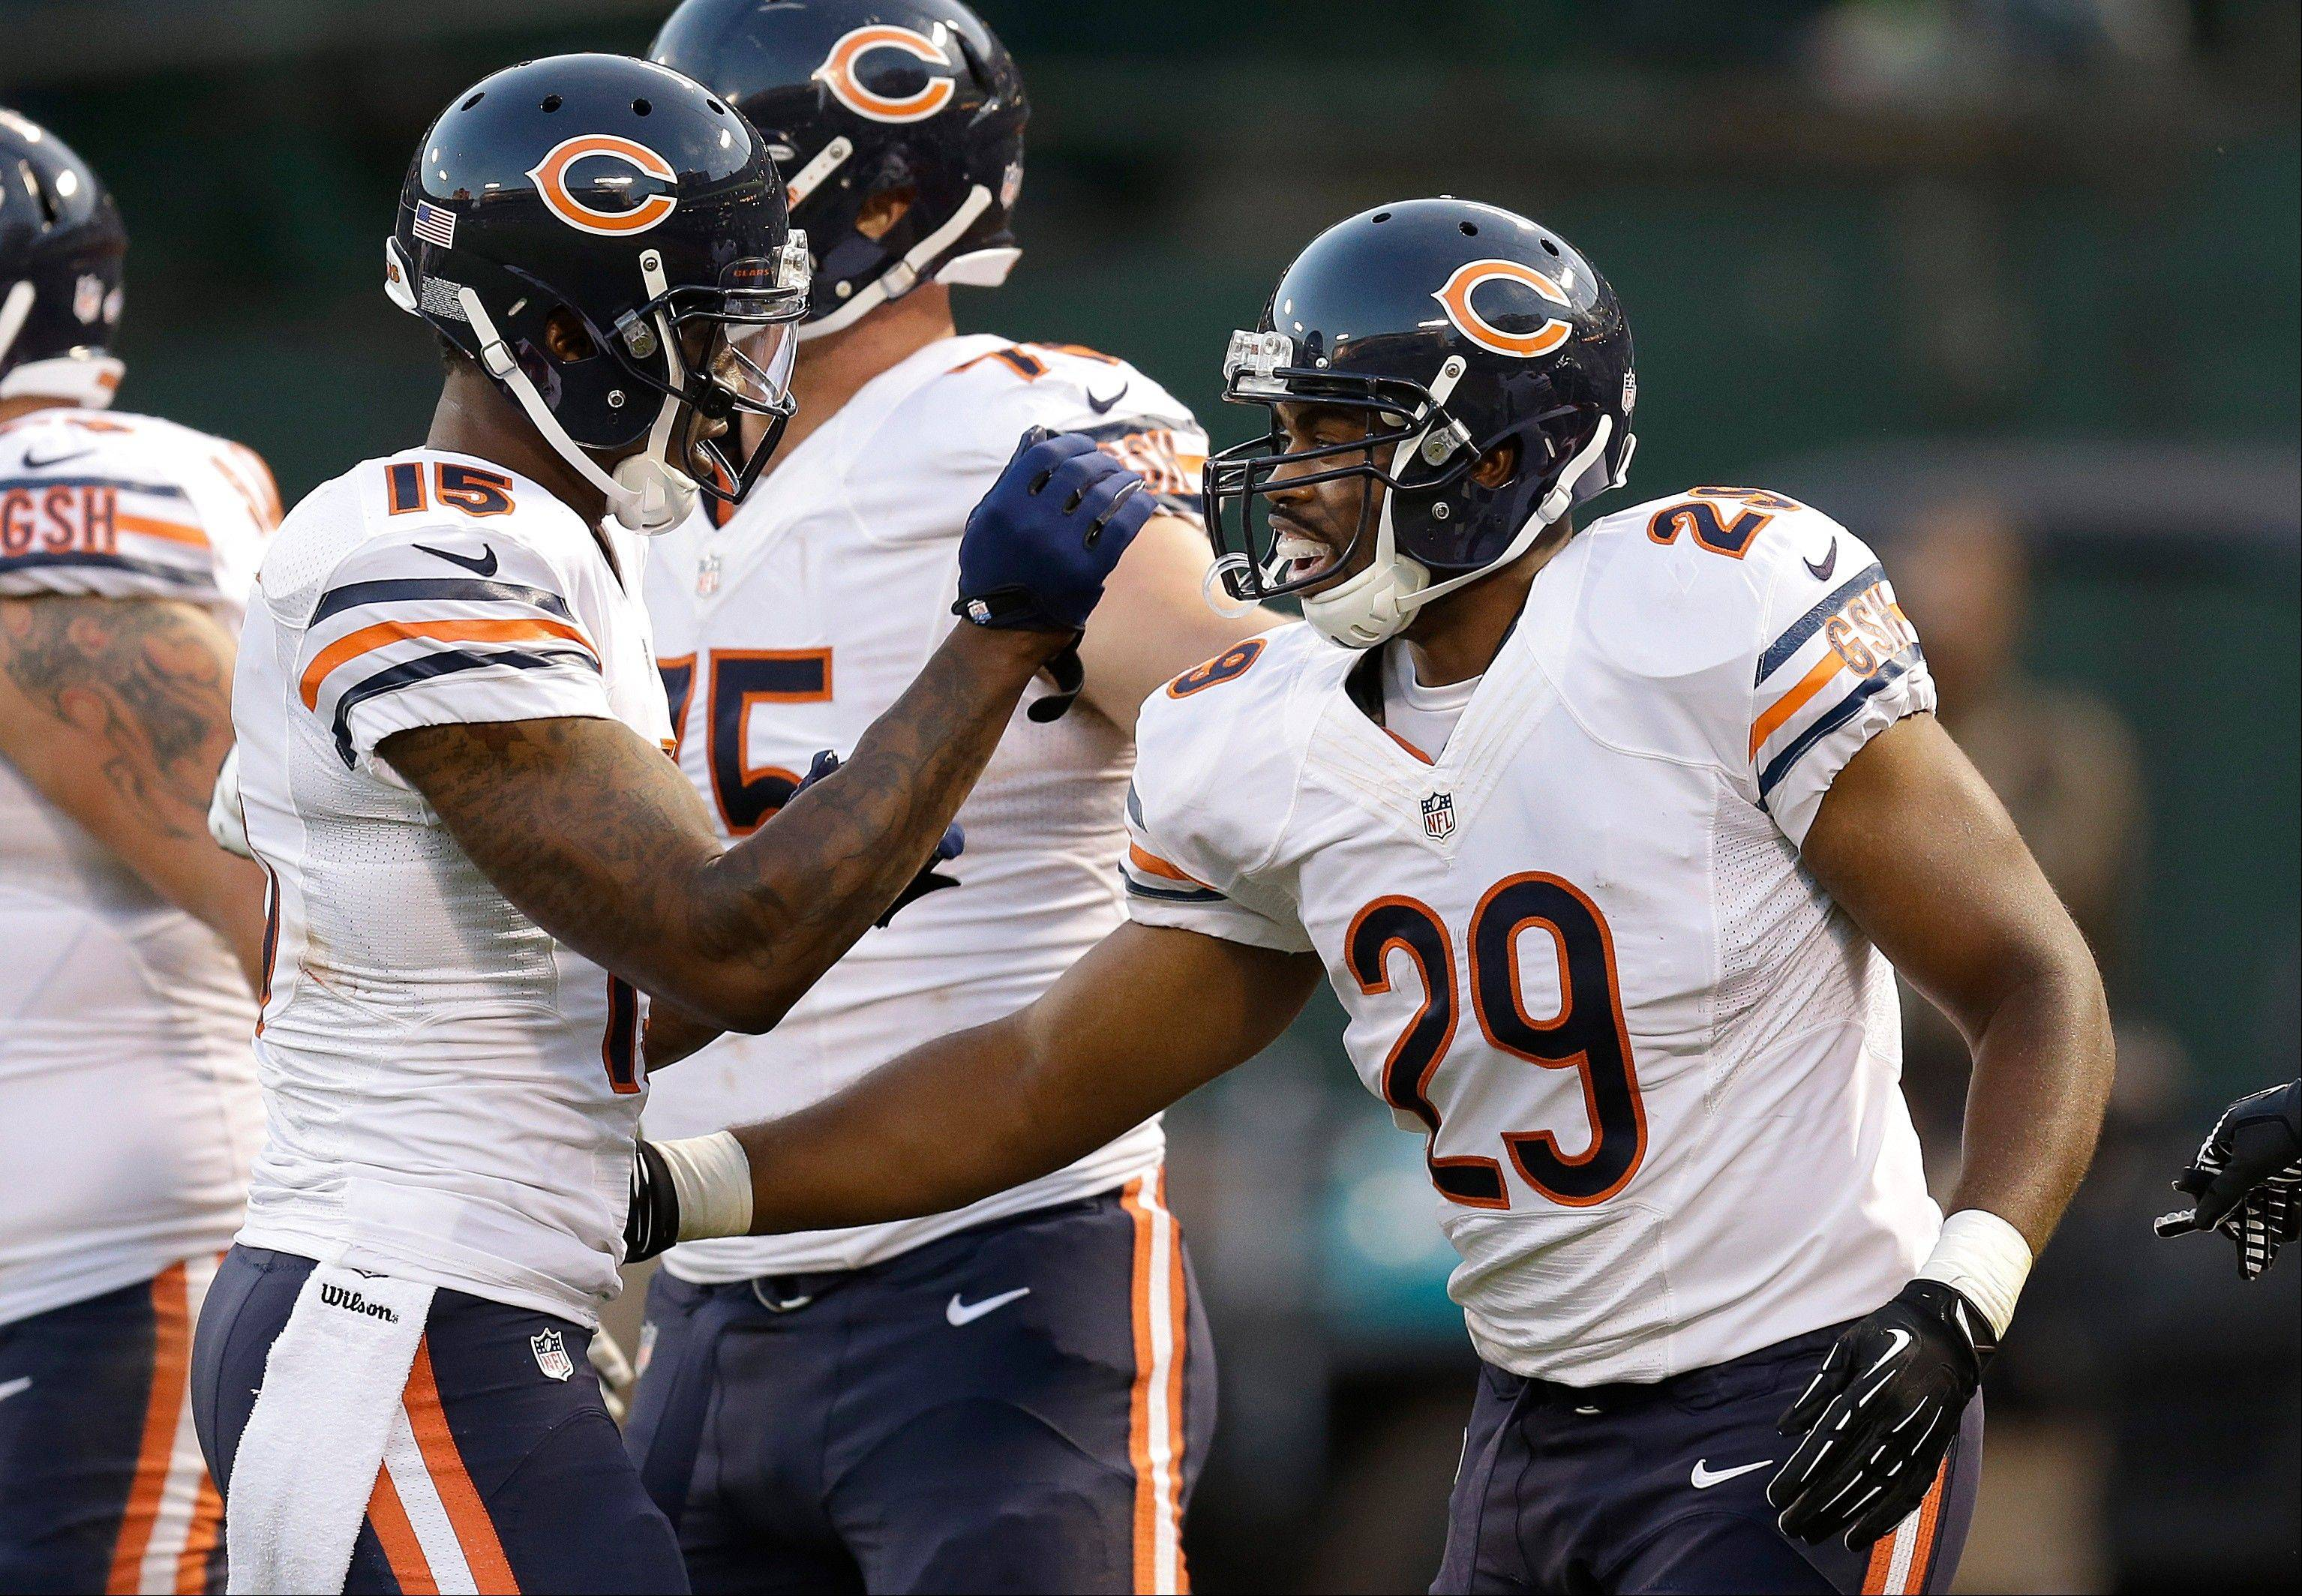 Chicago Bears running back Michael Bush (29) celebrates his touchdown with wide receiver Brandon Marshall (15) during the first quarter.